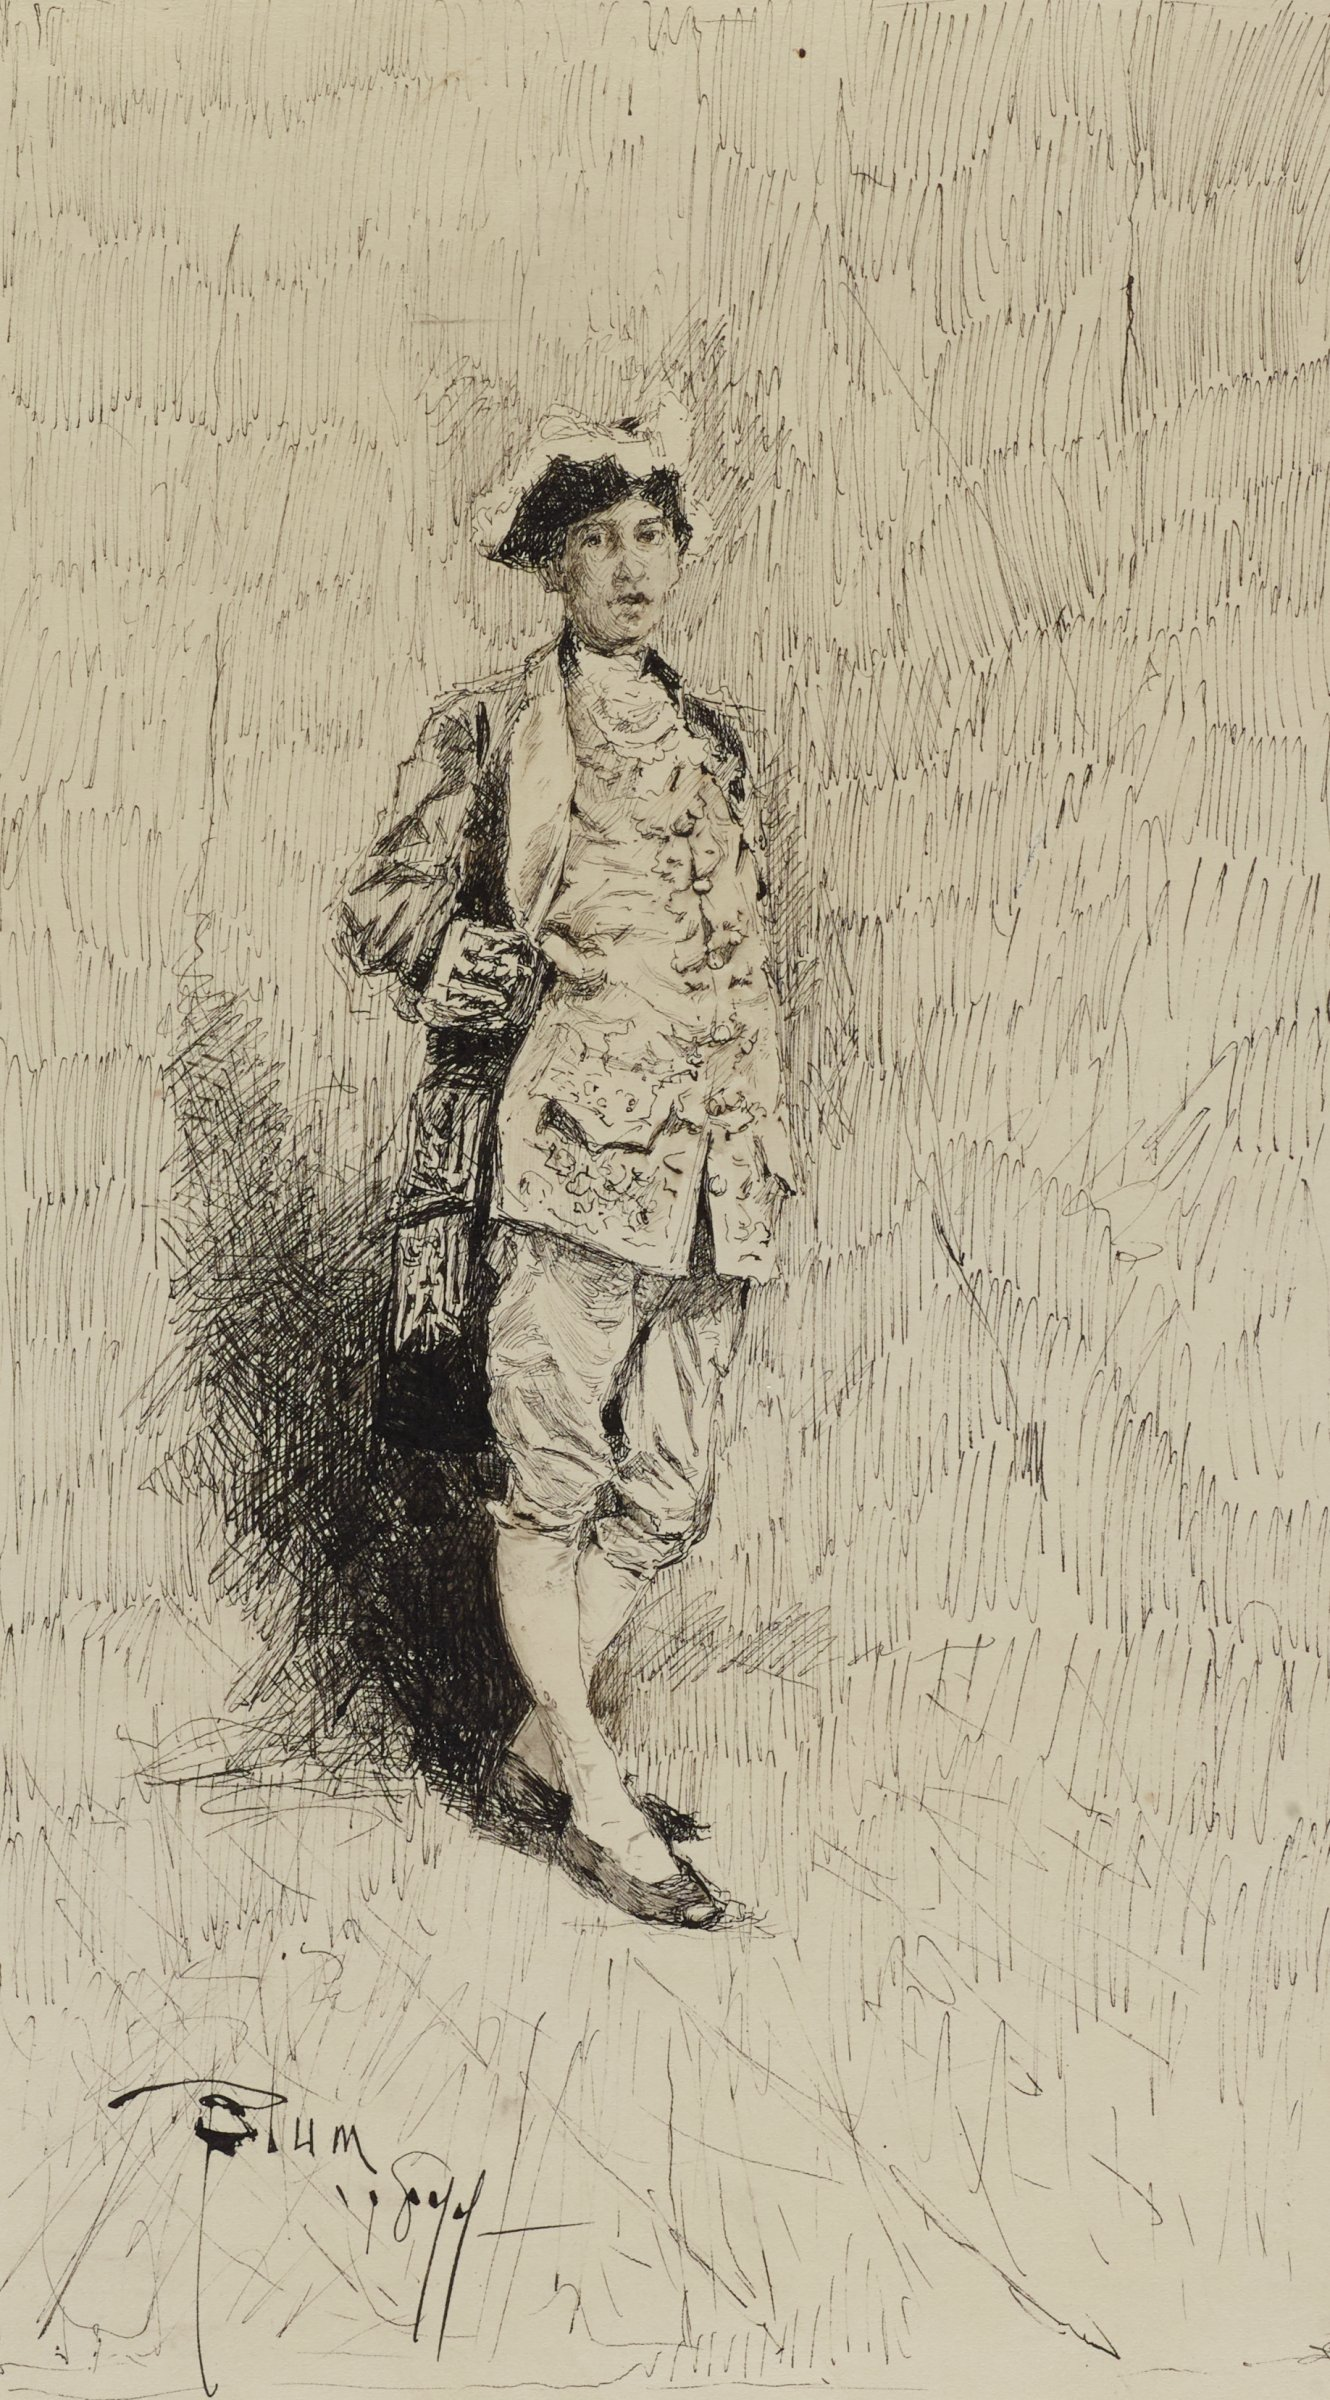 Mr. G. McLaughlin, Robert Frederick Blum, pen and ink on paper